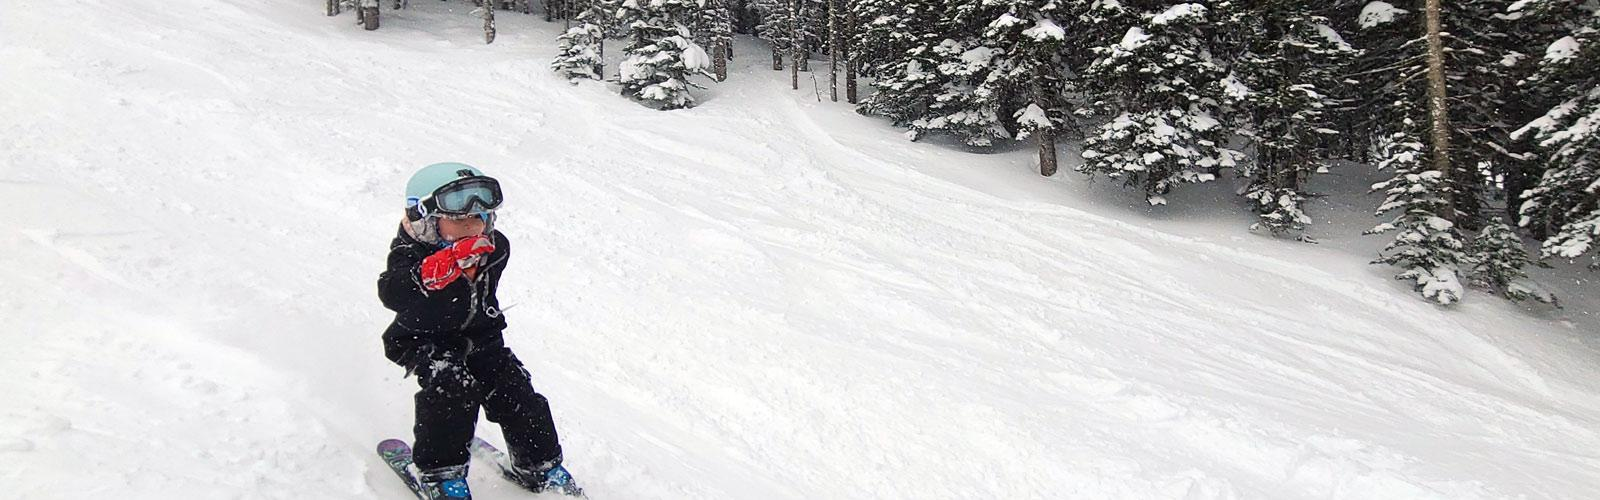 Young skier in powder snow